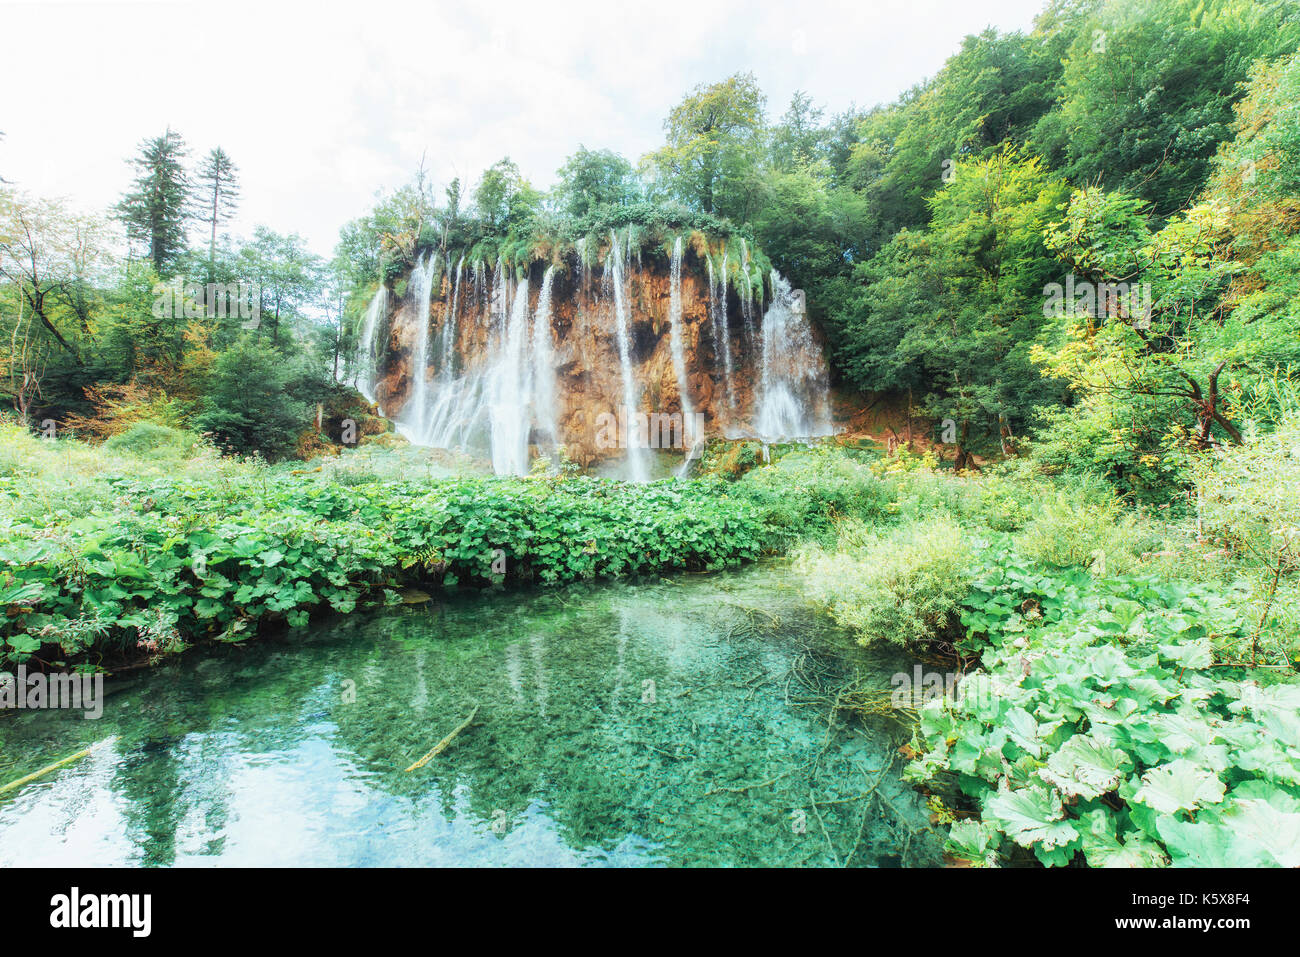 A photo of fishes swimming in a lake, taken in the national park Plitvice Croatia. - Stock Image